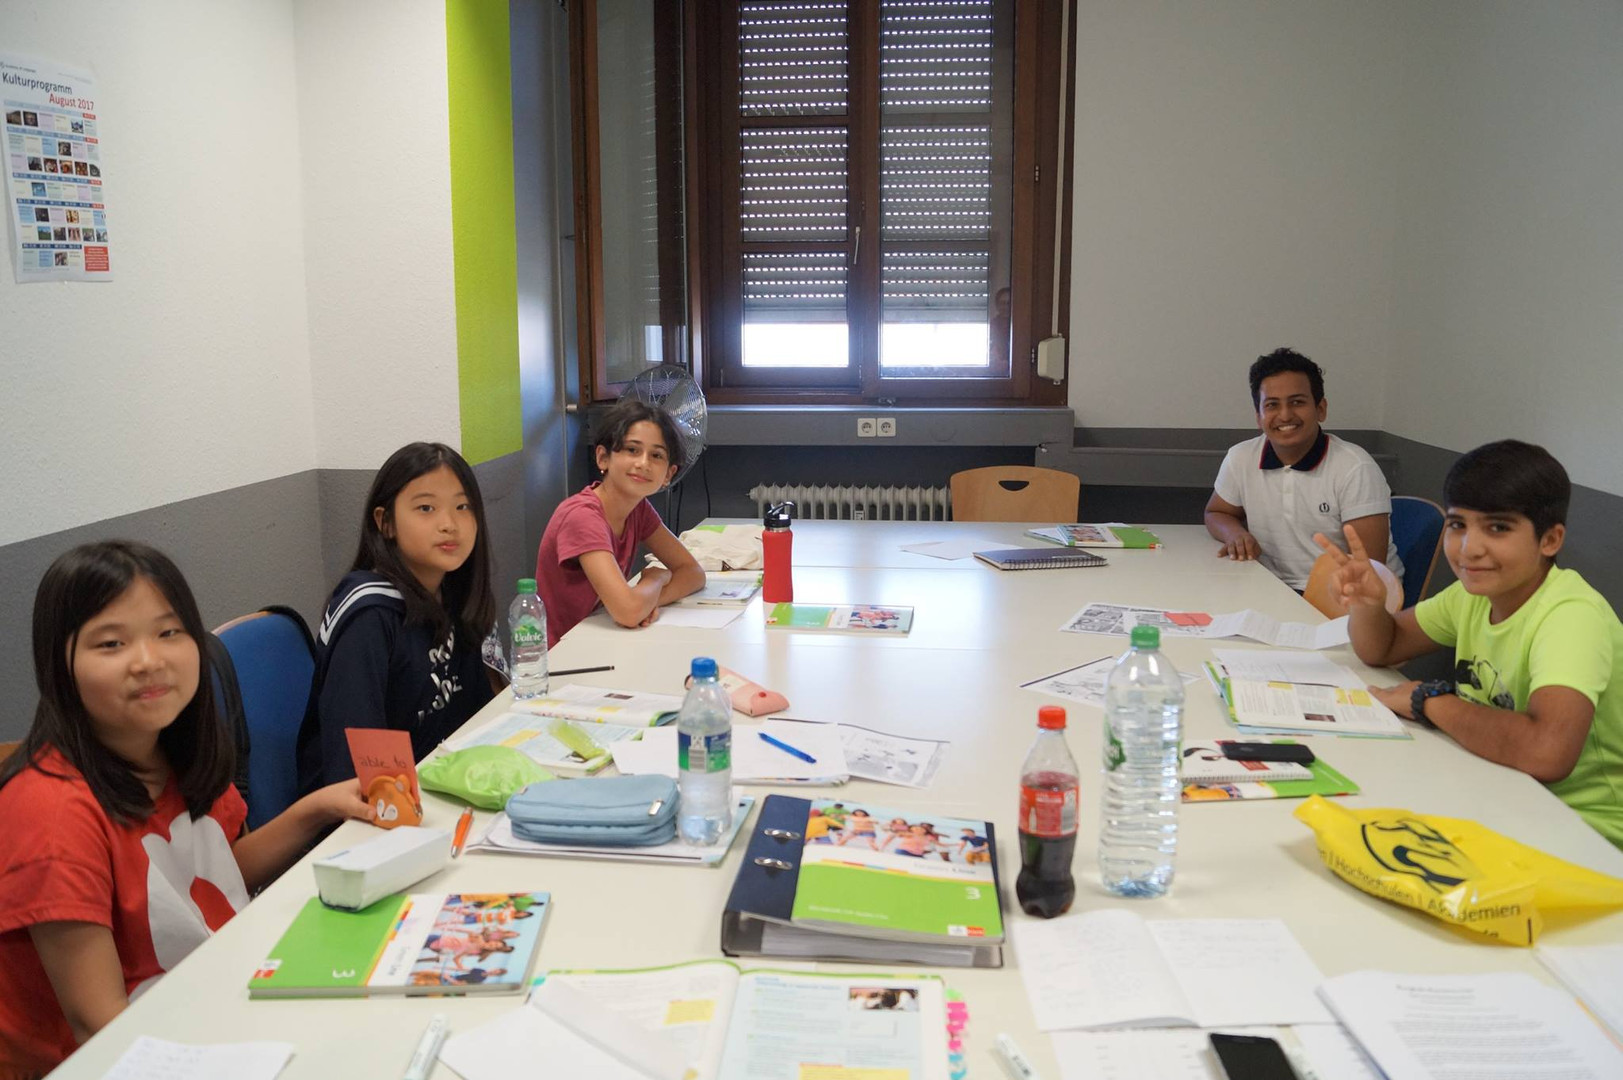 F+U Academy of Languages - English and German courses